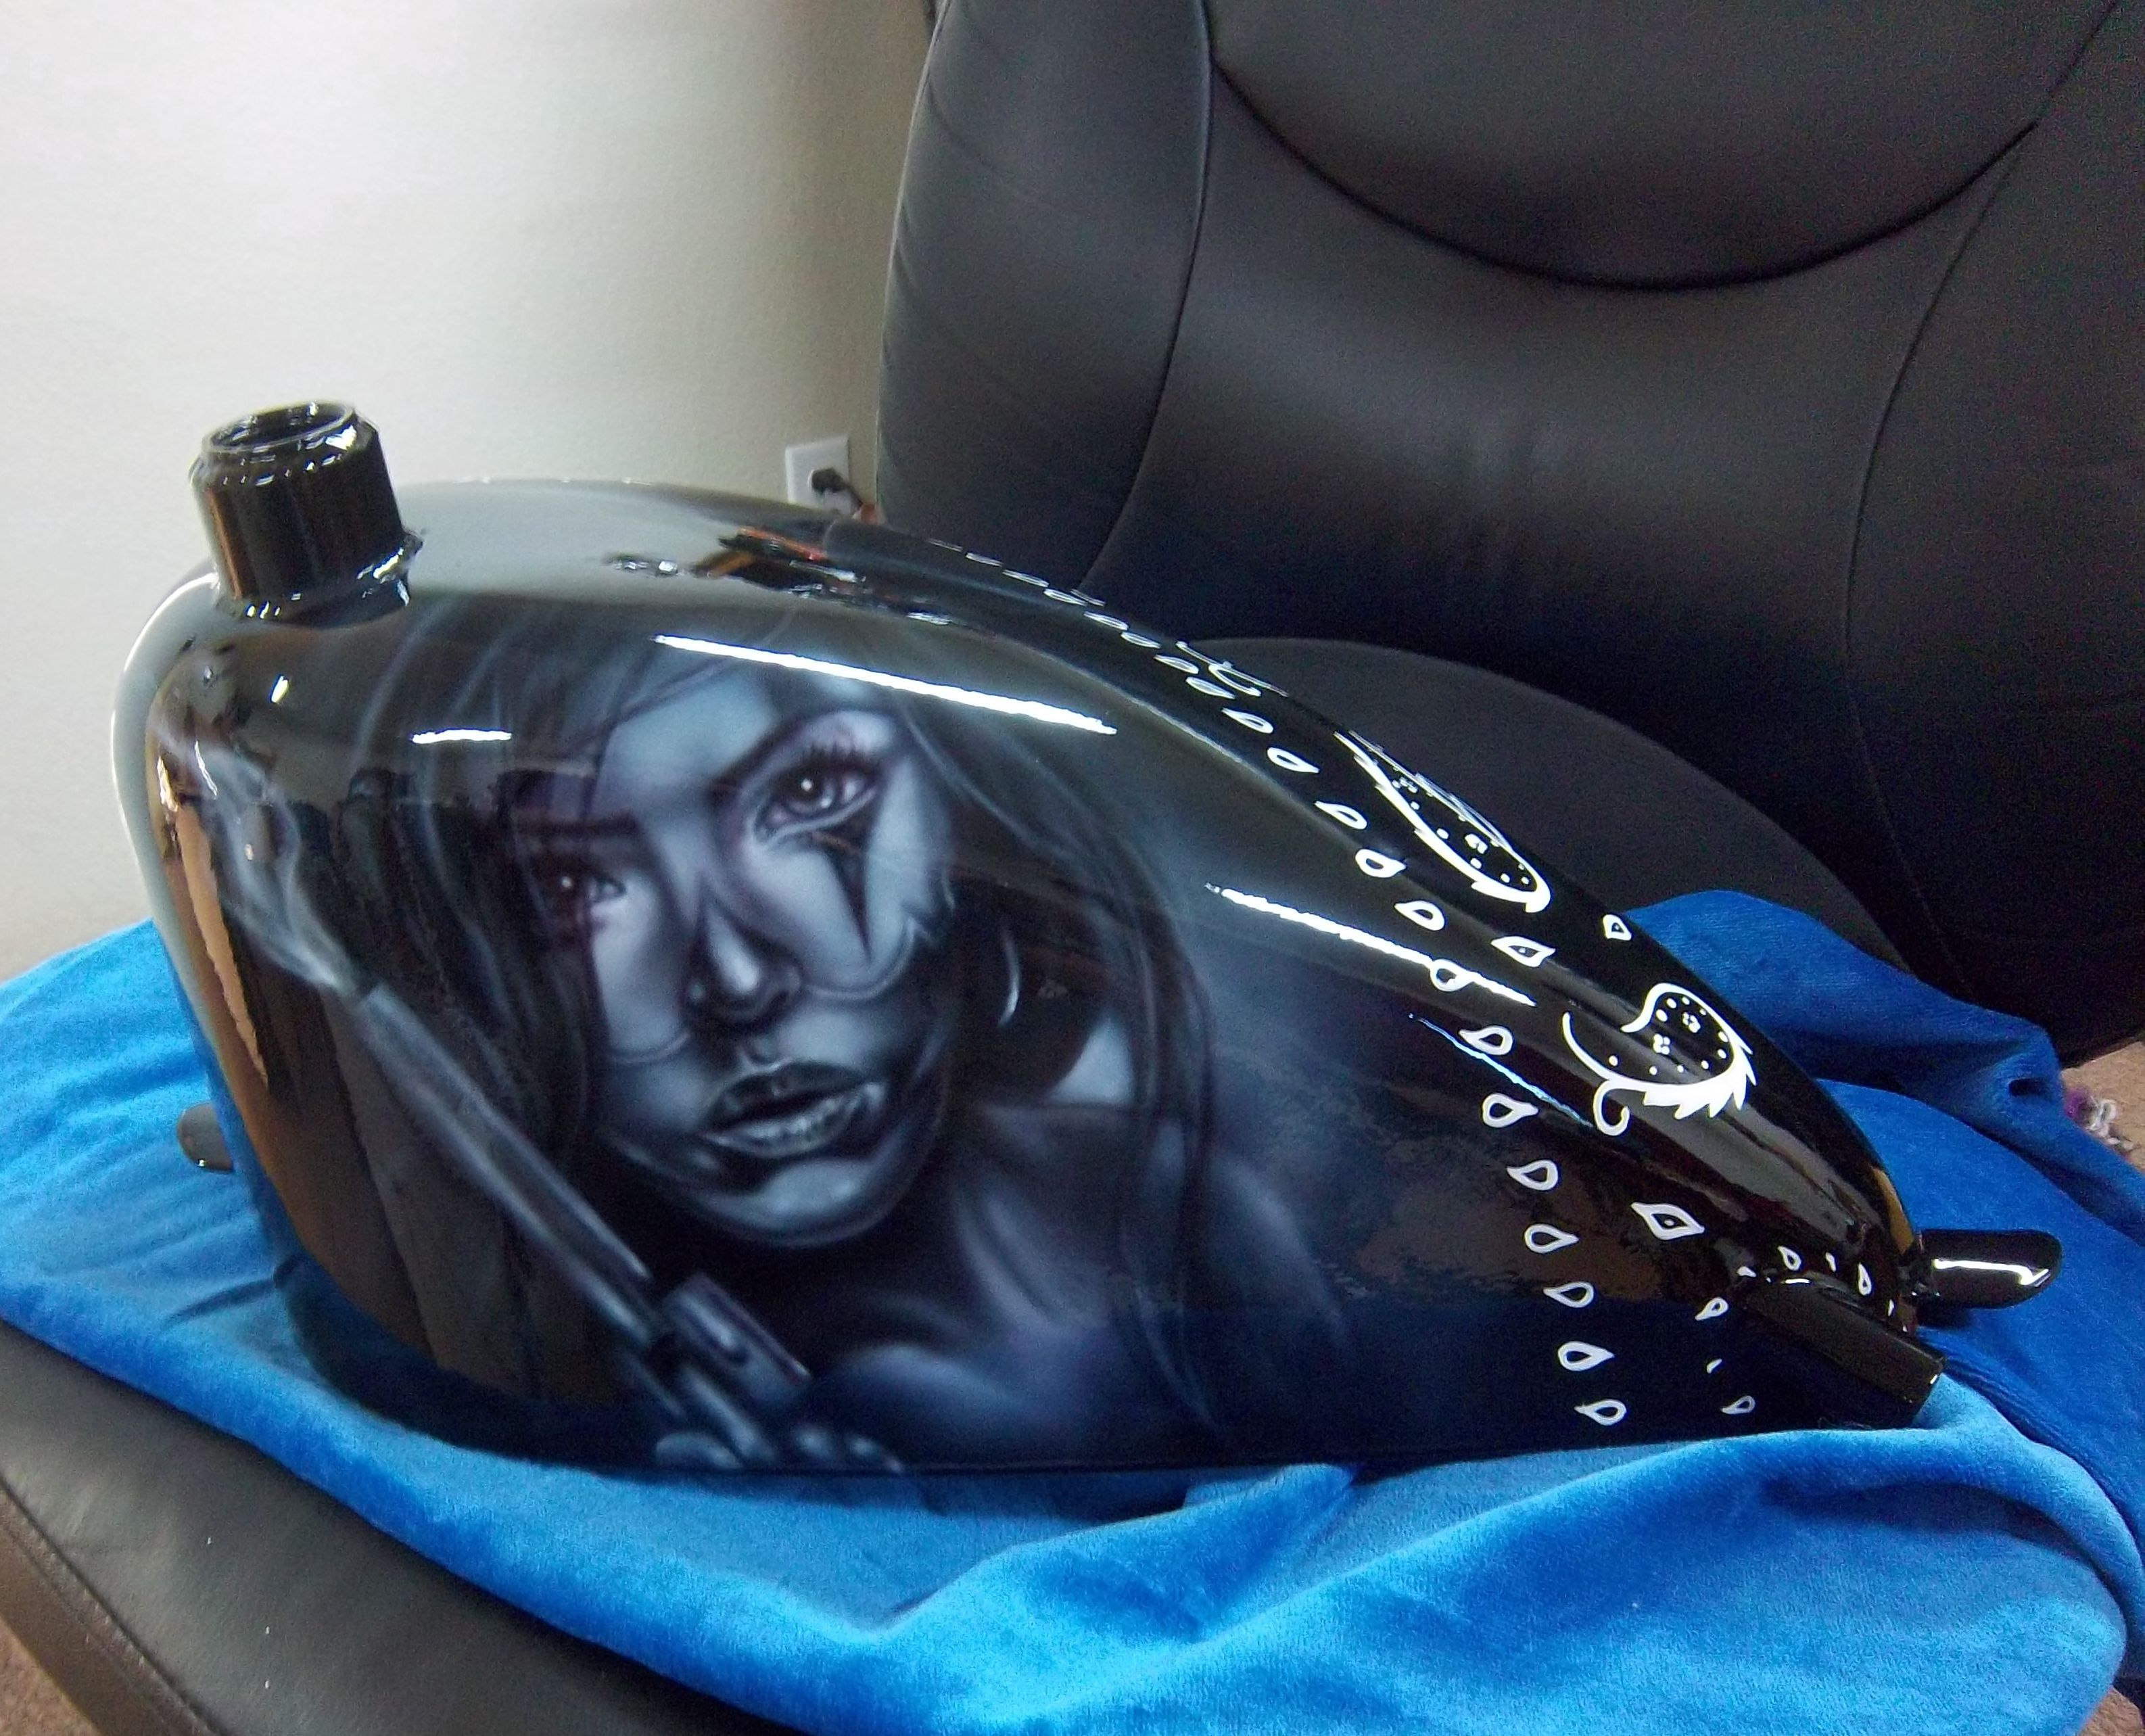 custom tanks airbrush art motorcycle tank bike art custom paint metal. Black Bedroom Furniture Sets. Home Design Ideas